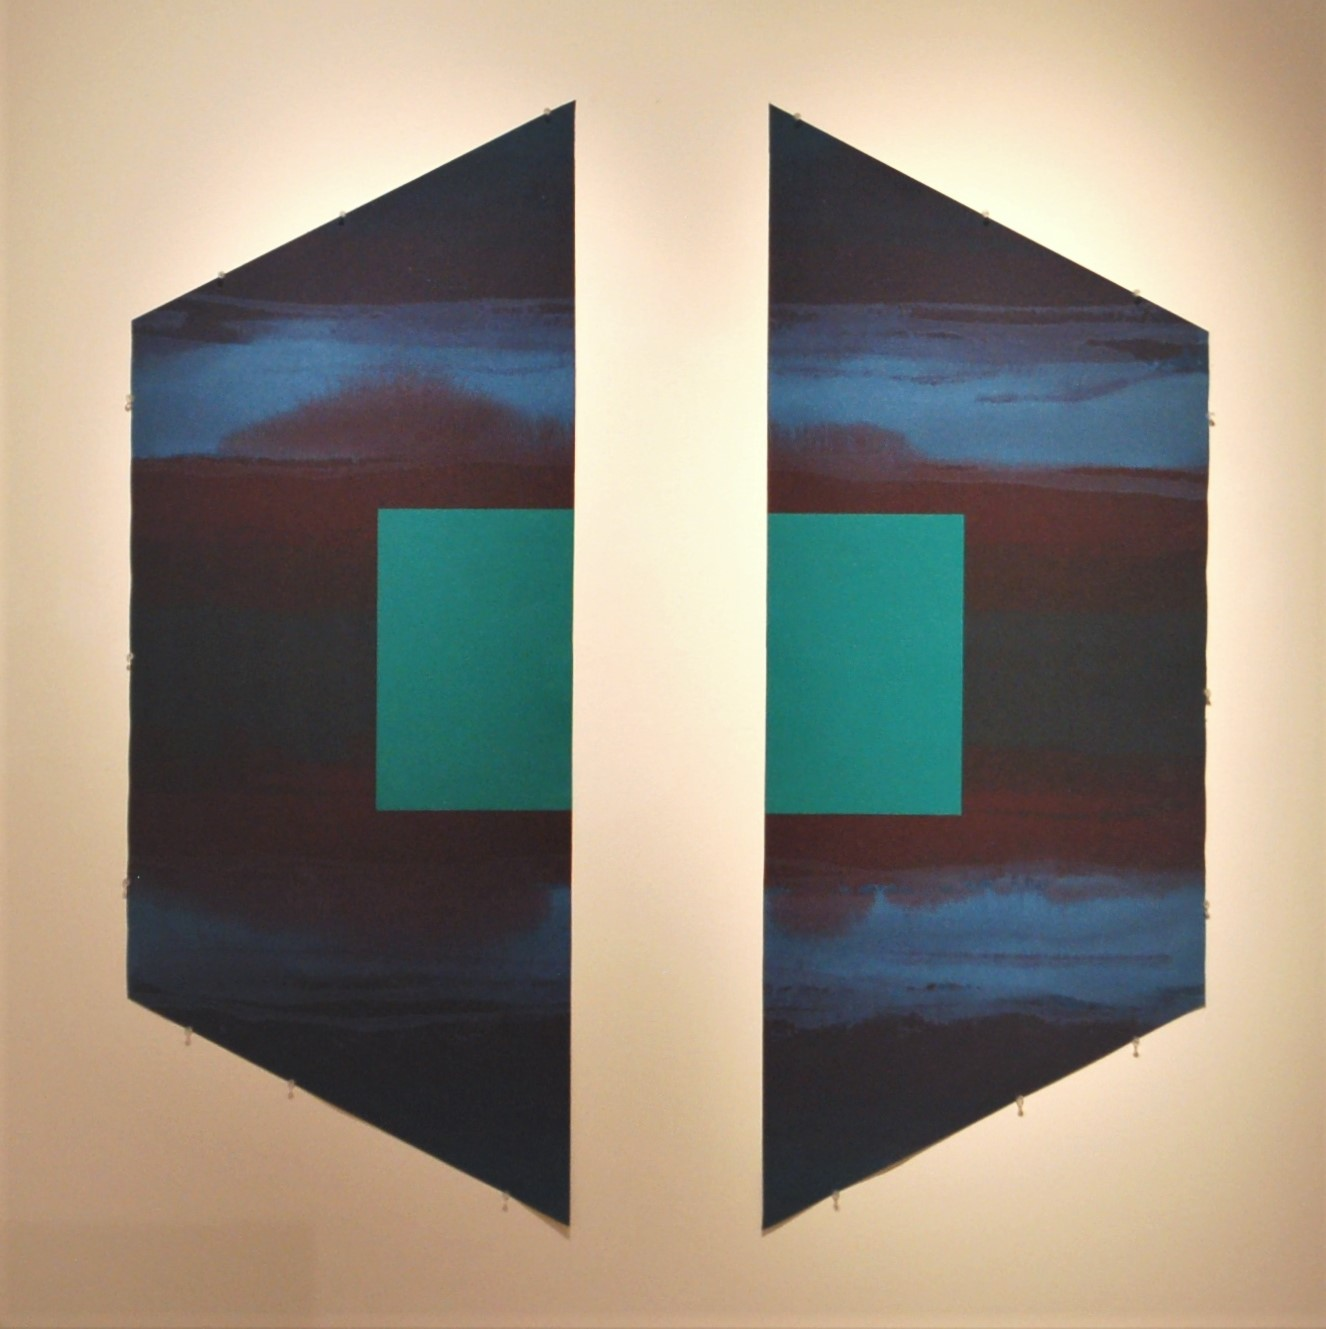 A hexagonal painting cut in half, each side is symmetrical with a teal square in the middle and a blue background.